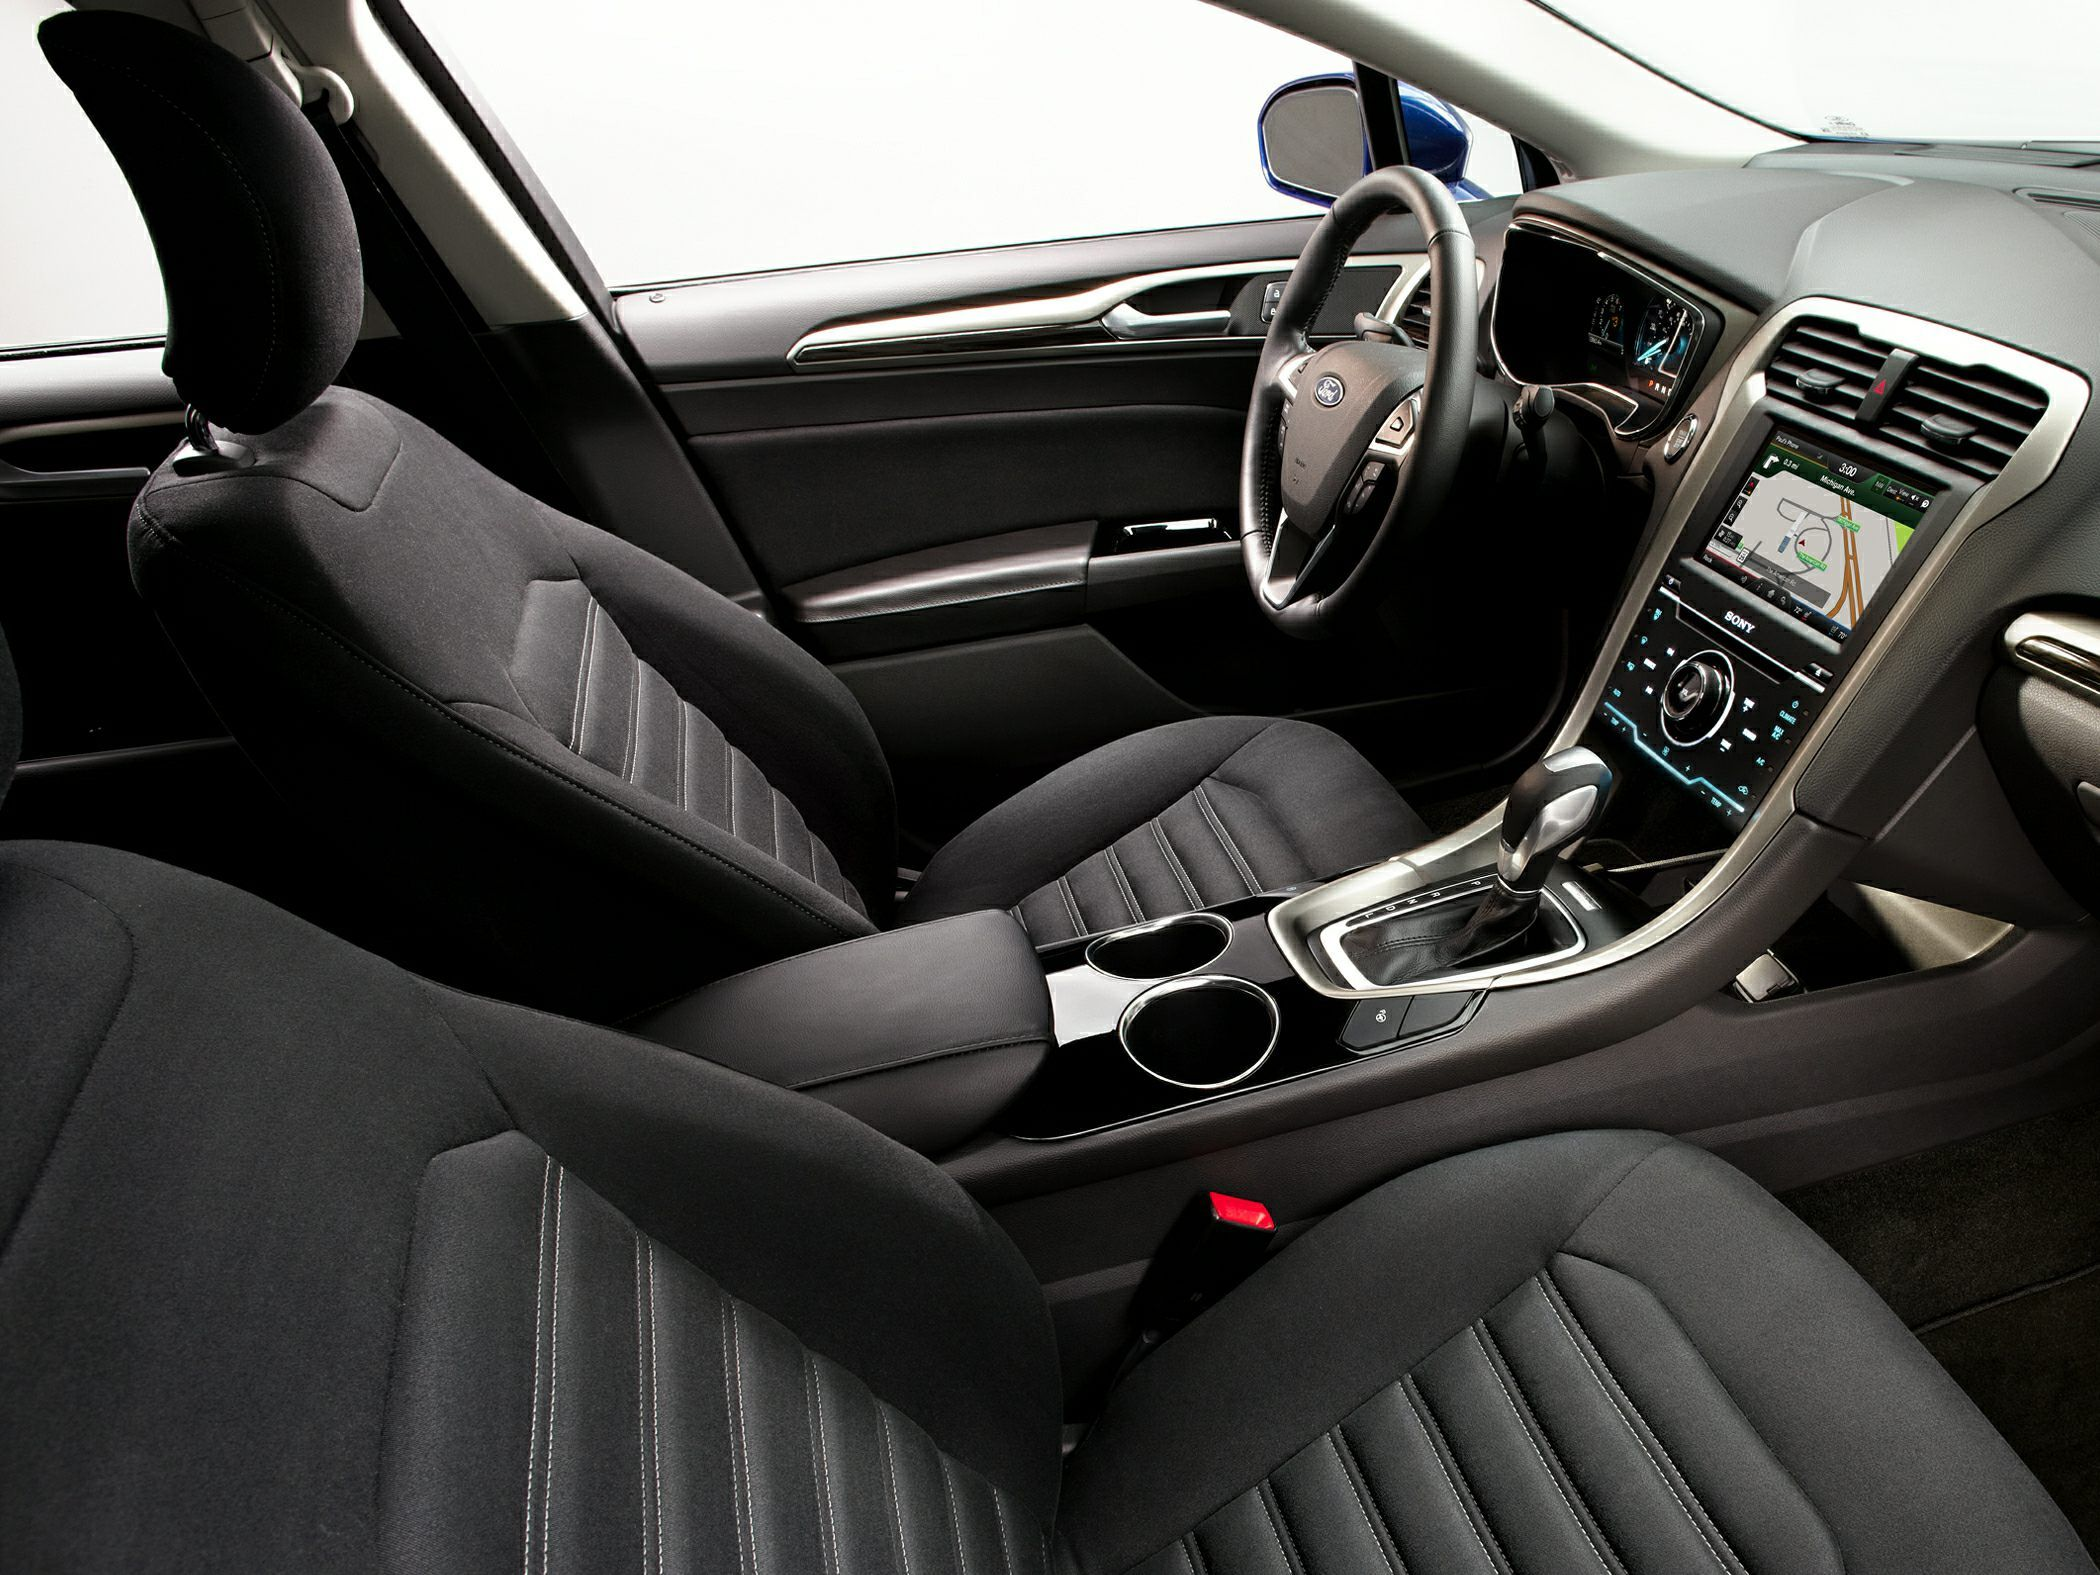 2014 Ford Fusion Hybrid Interior Visit Http Www Holmestuttle Com